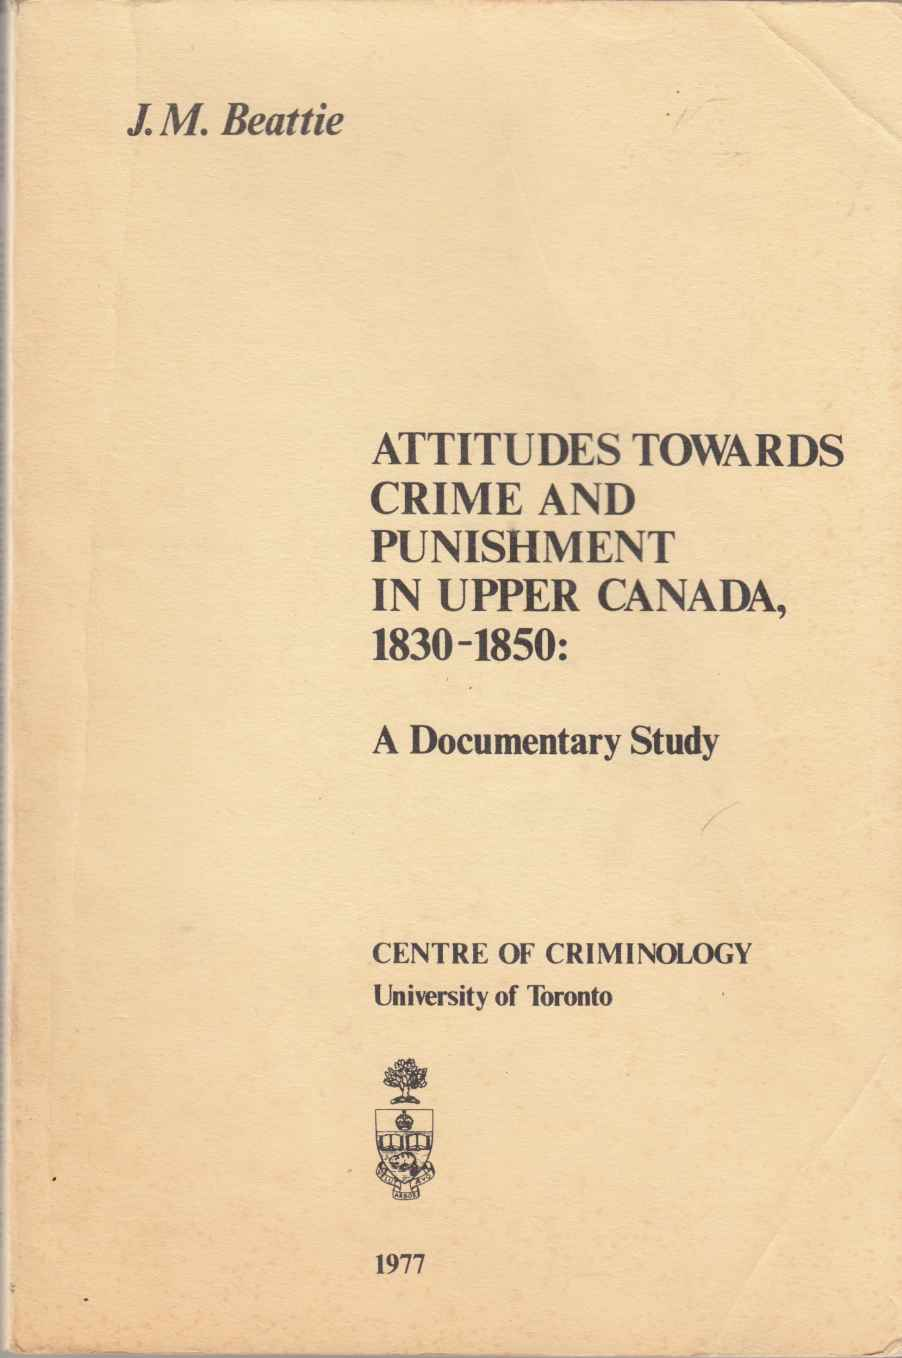 Image for Attitudes Towards Crime and Punishment in Upper Canada, 1830-1850 A Documentary Study